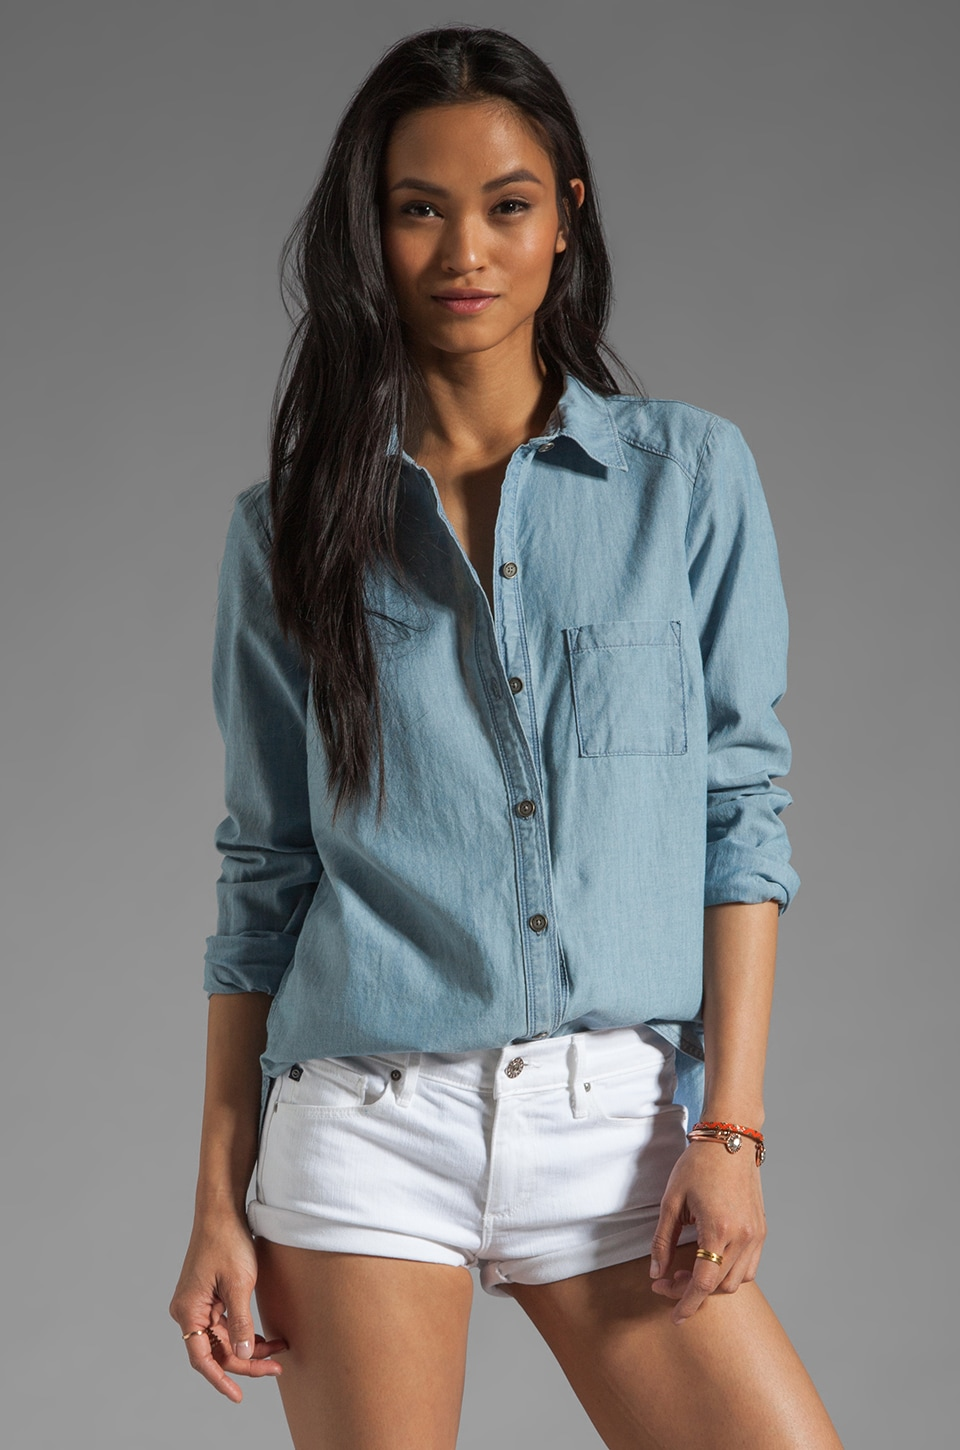 PAIGE Eden Shirt in Ava Chambray